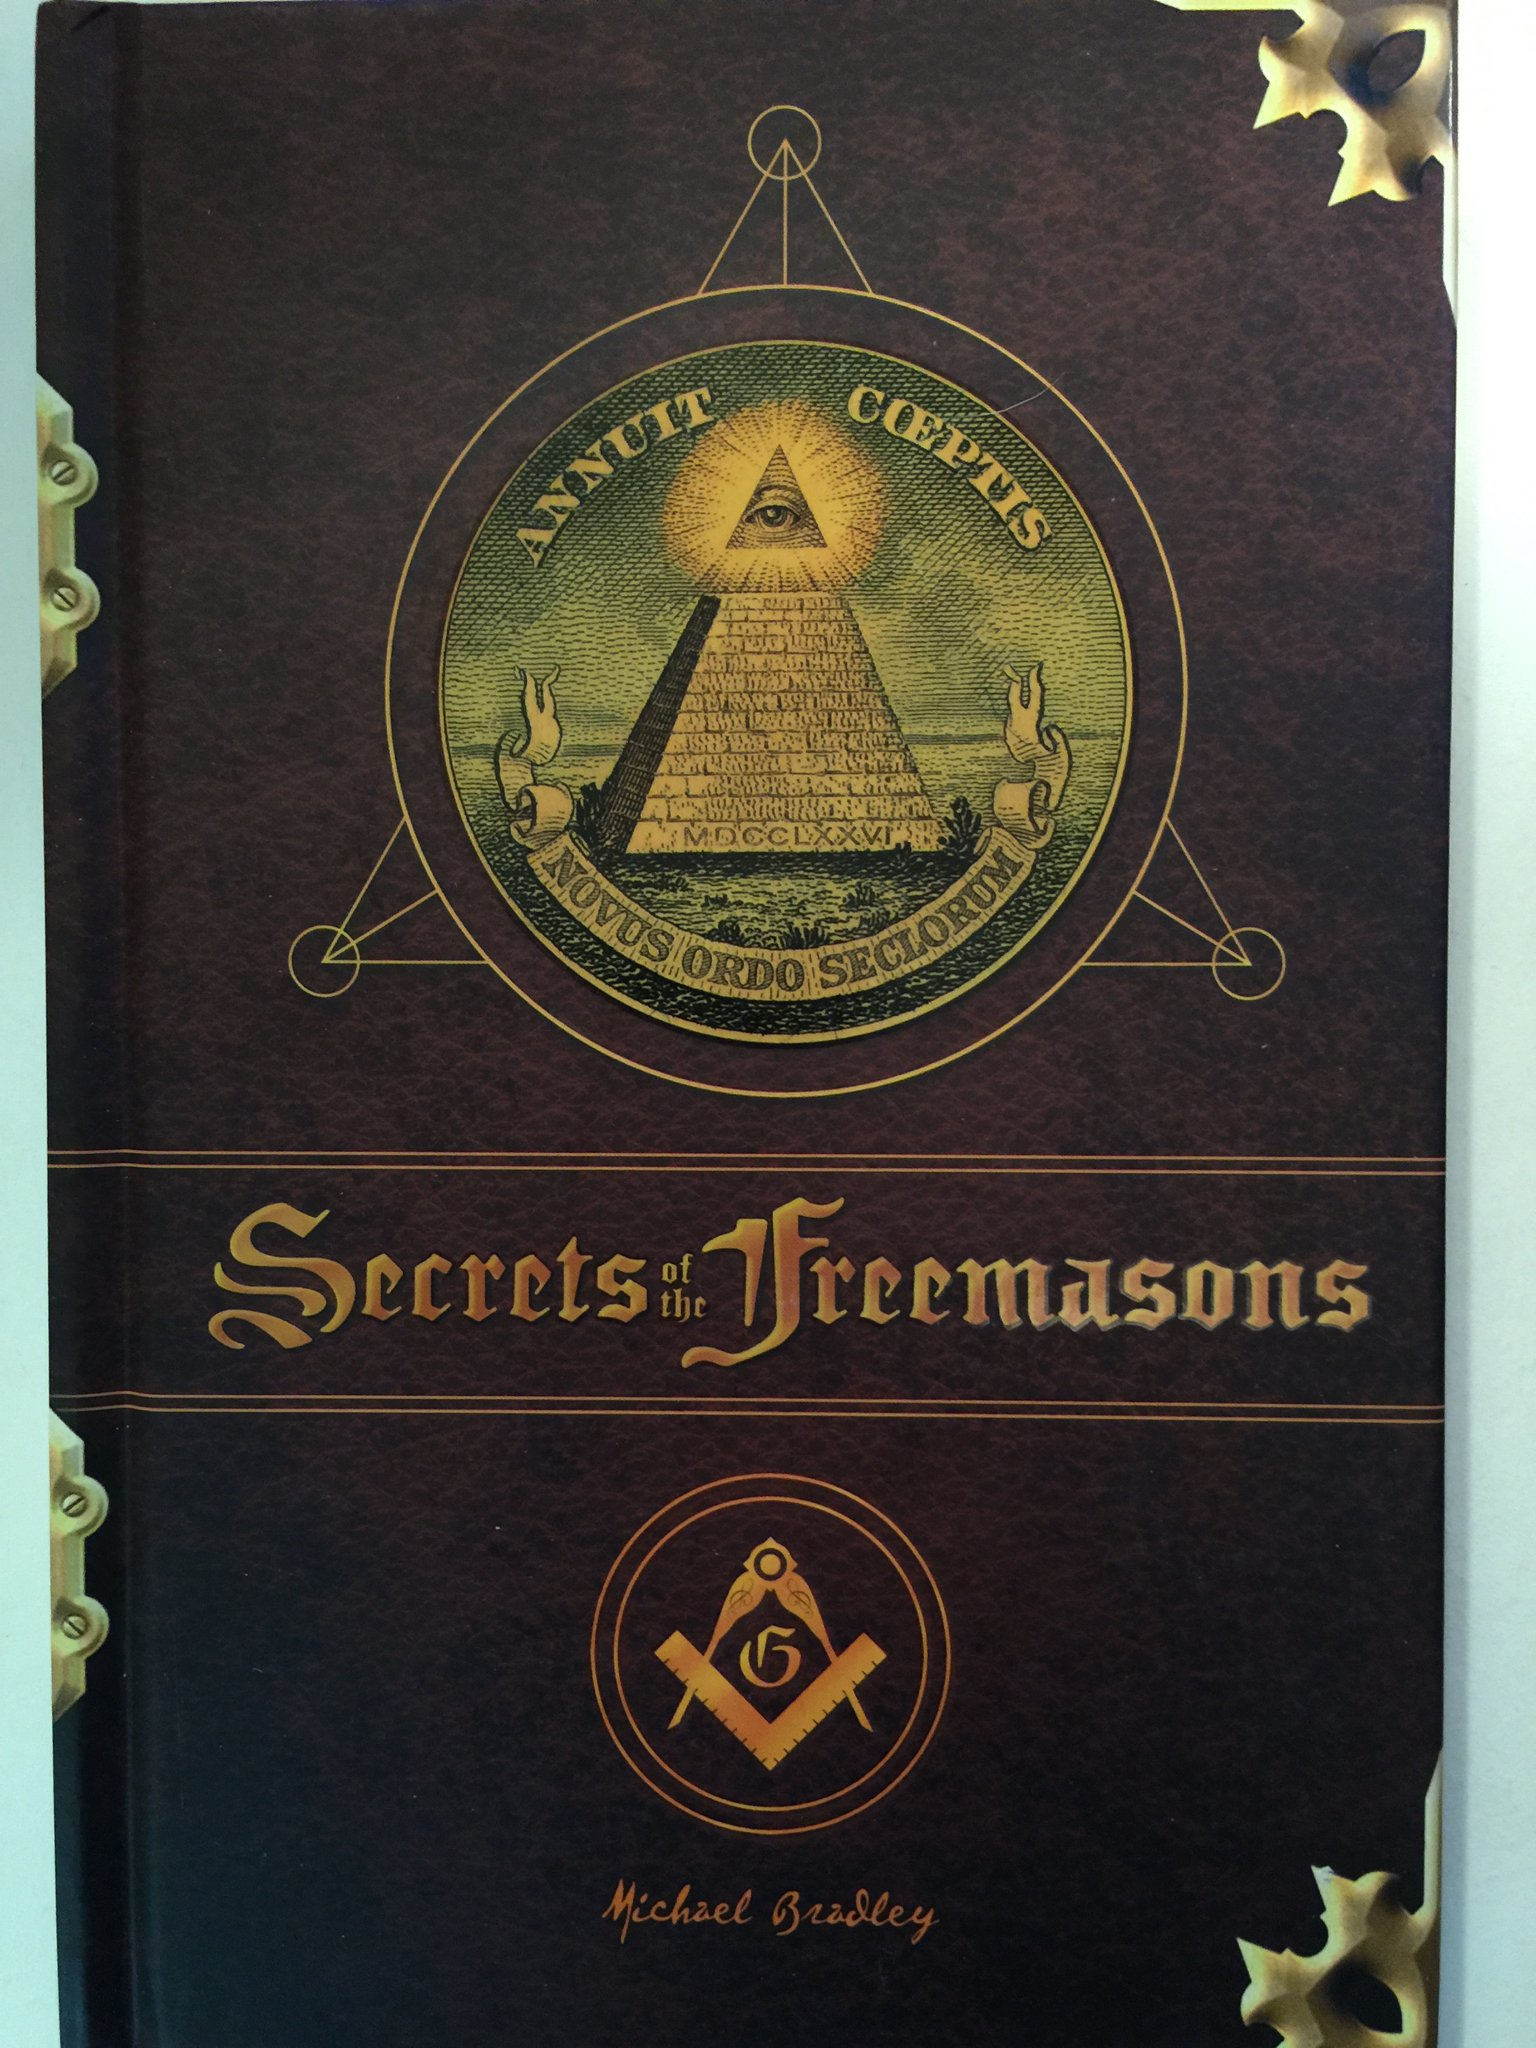 The Secrets of the Freemasons, Morgan, Pat